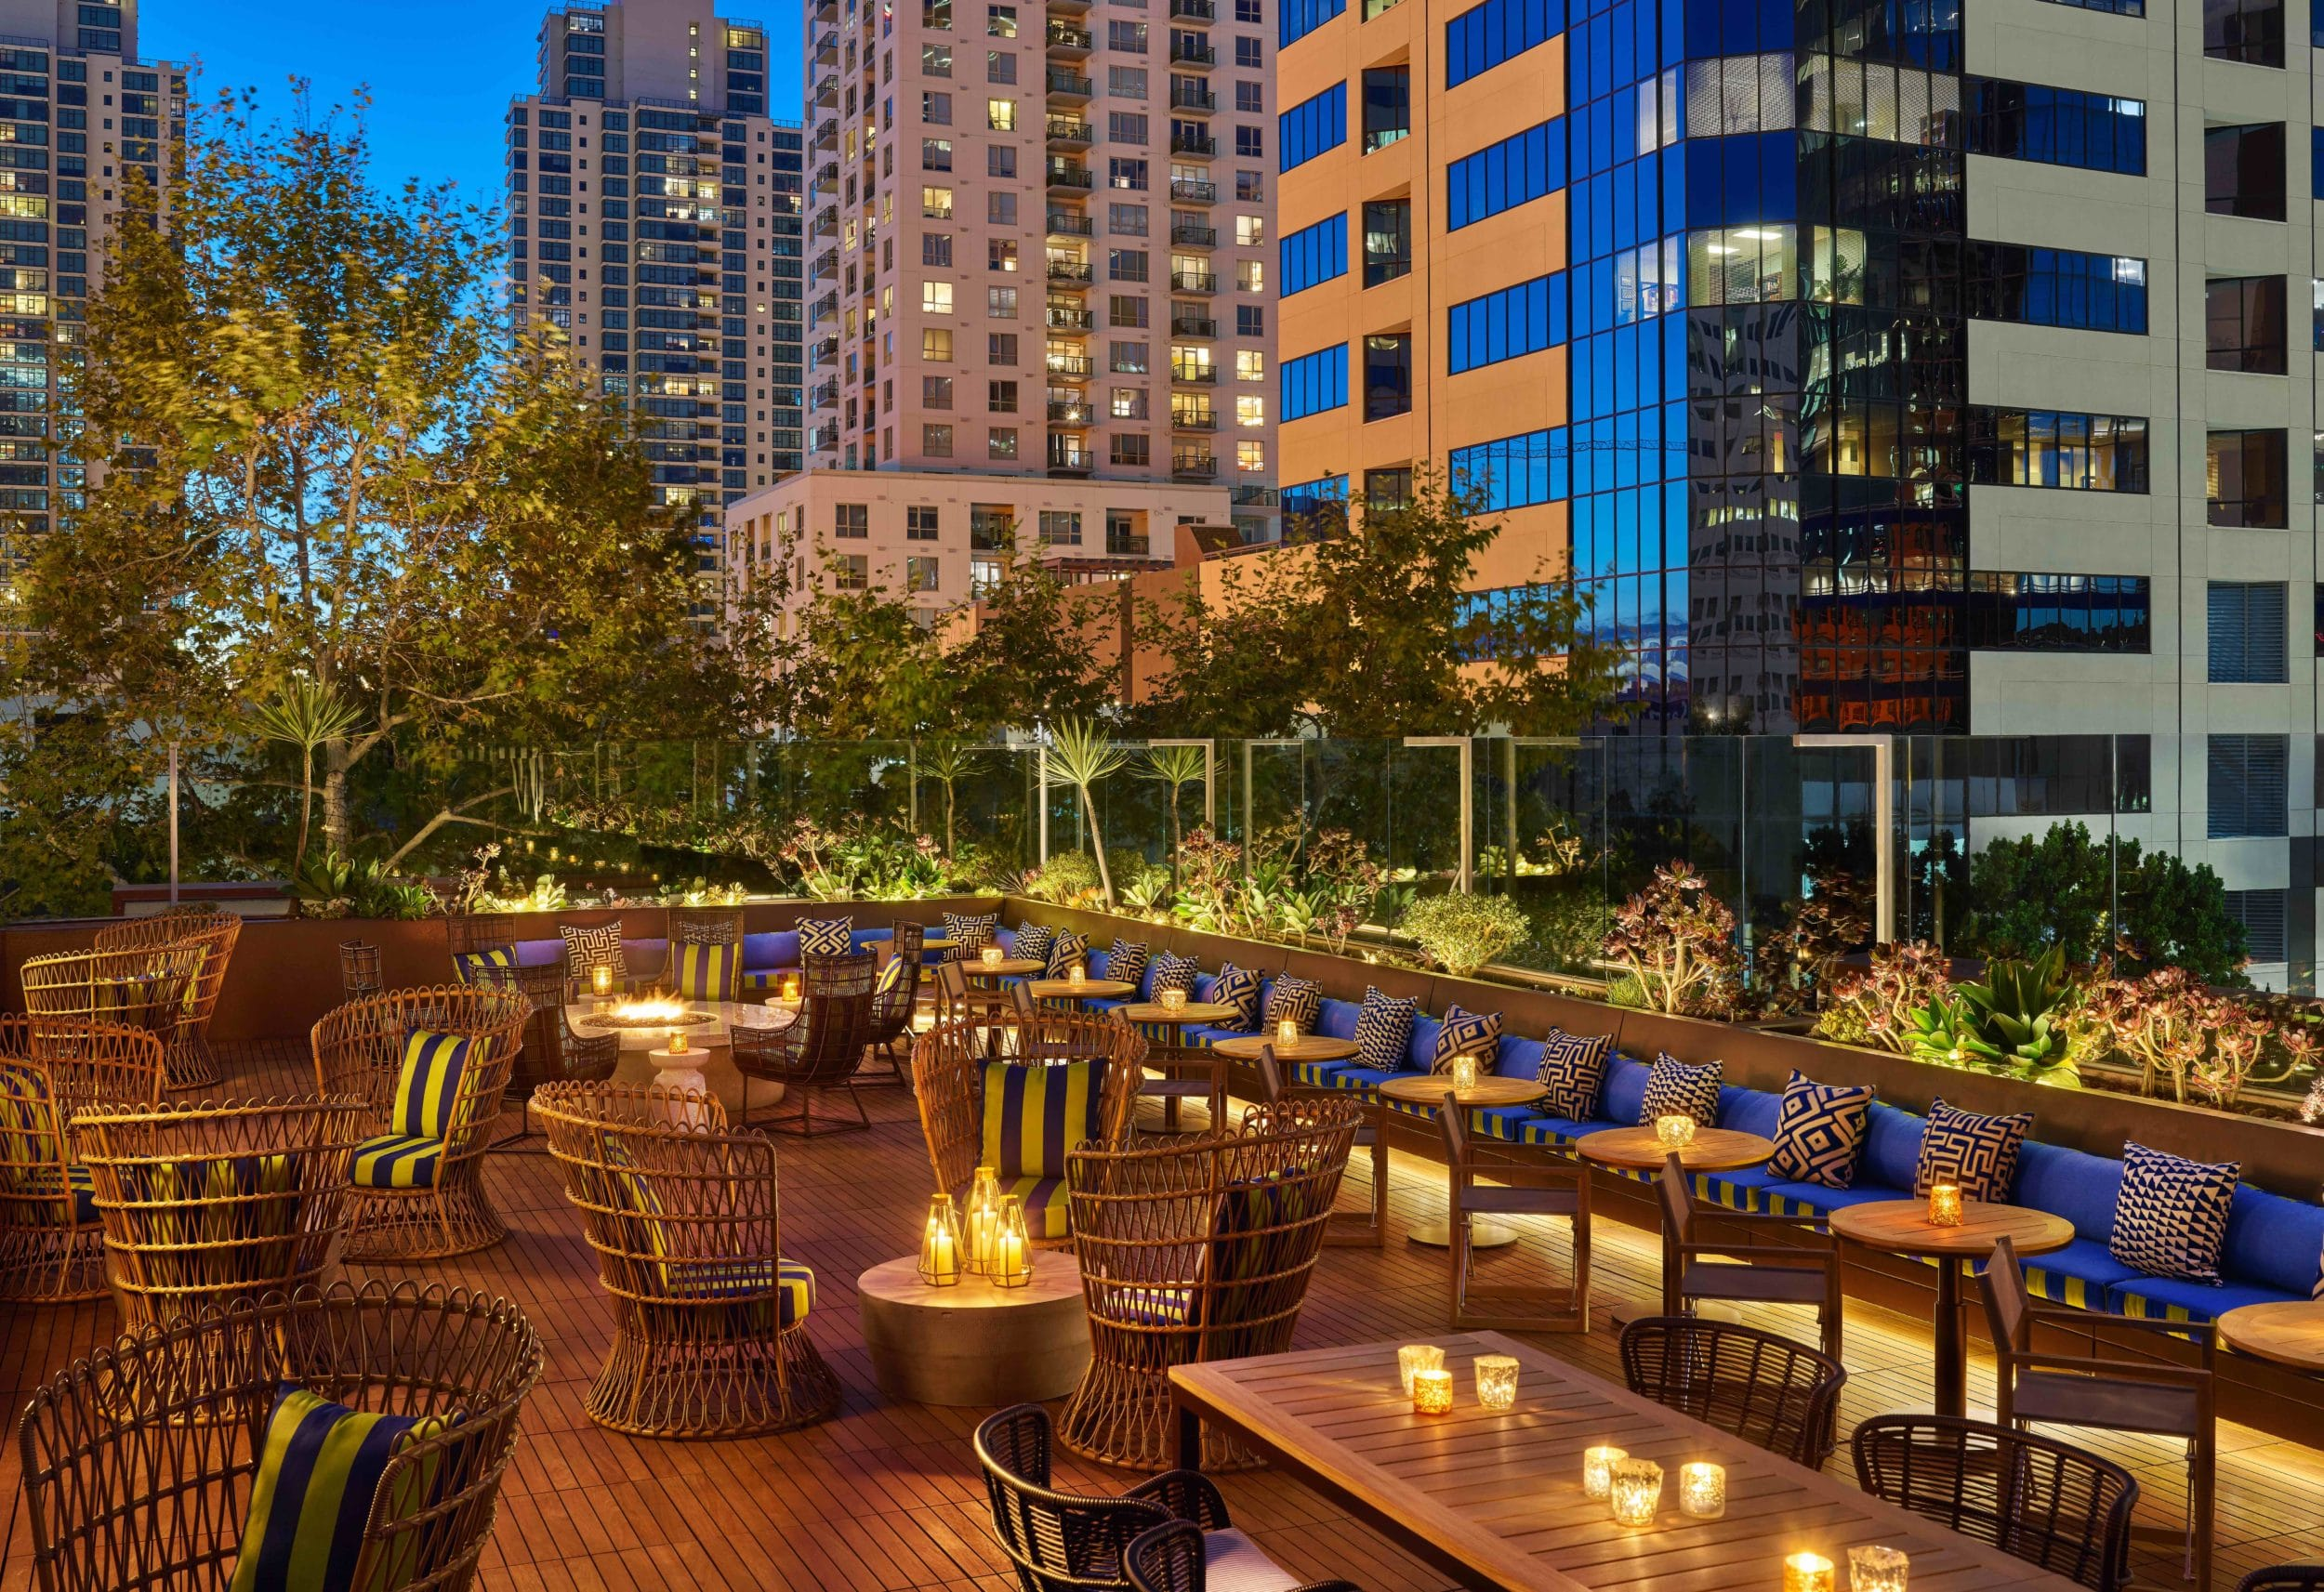 Hotel Republic San Diego: What To Know